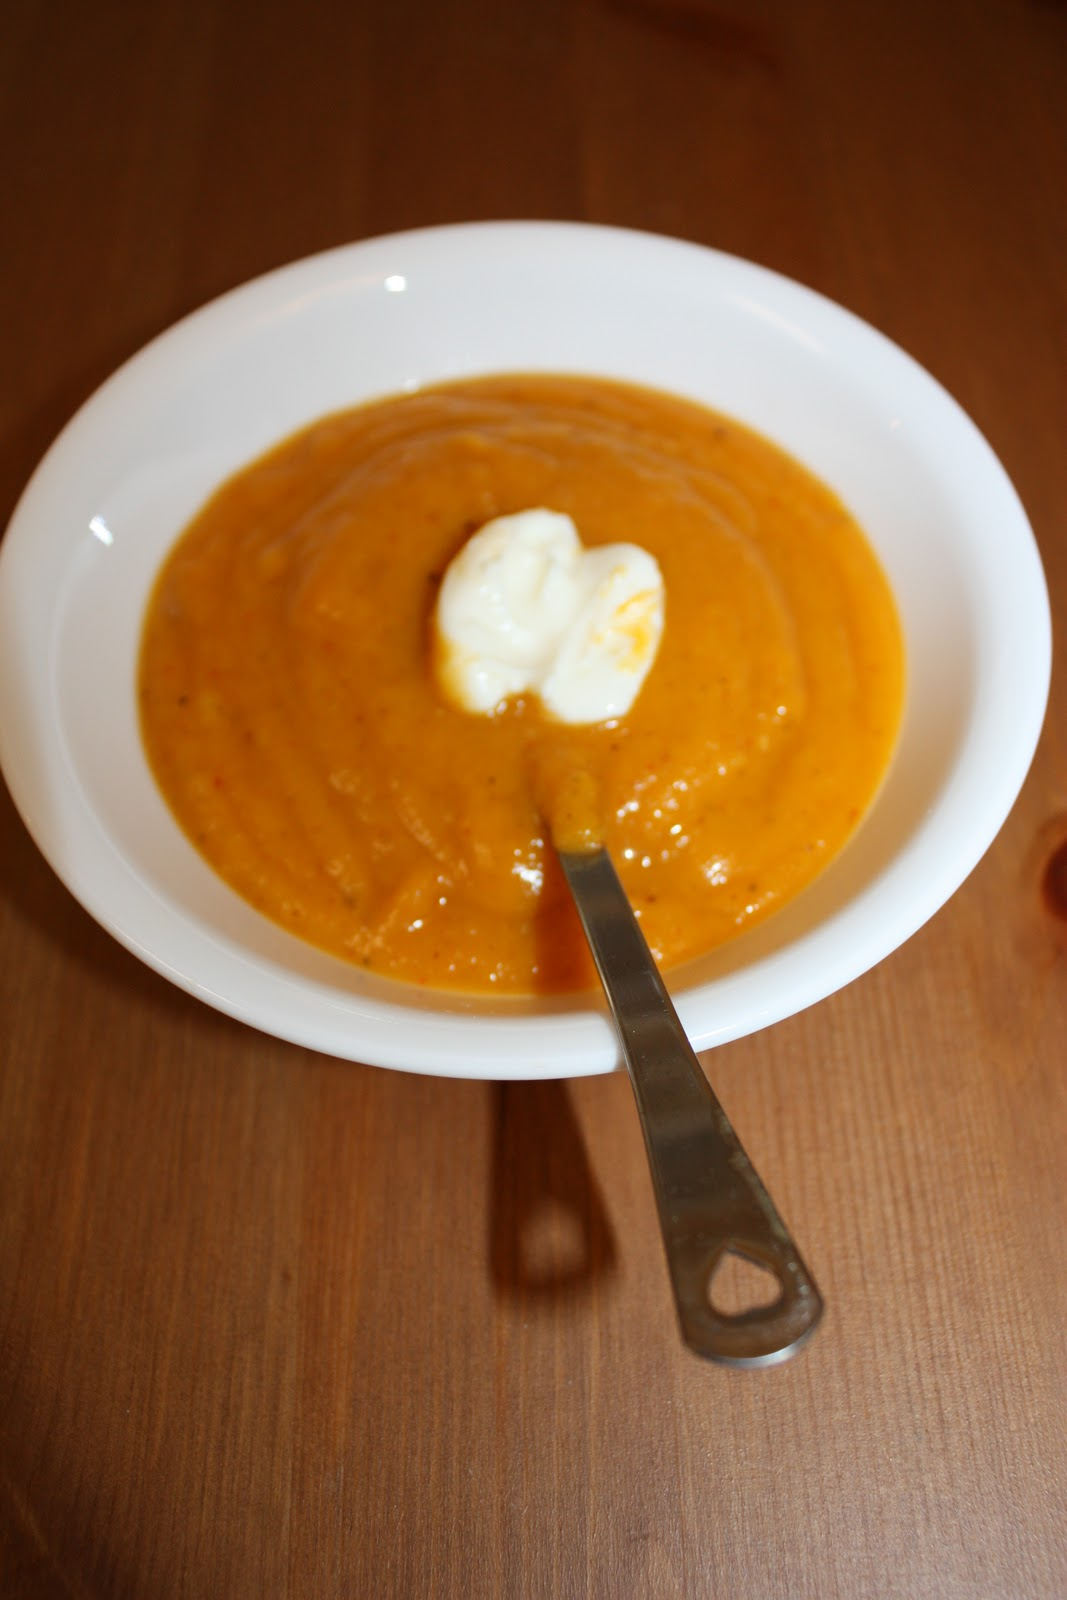 Olive The Ingredients: Butternut Squash & Apple Soup